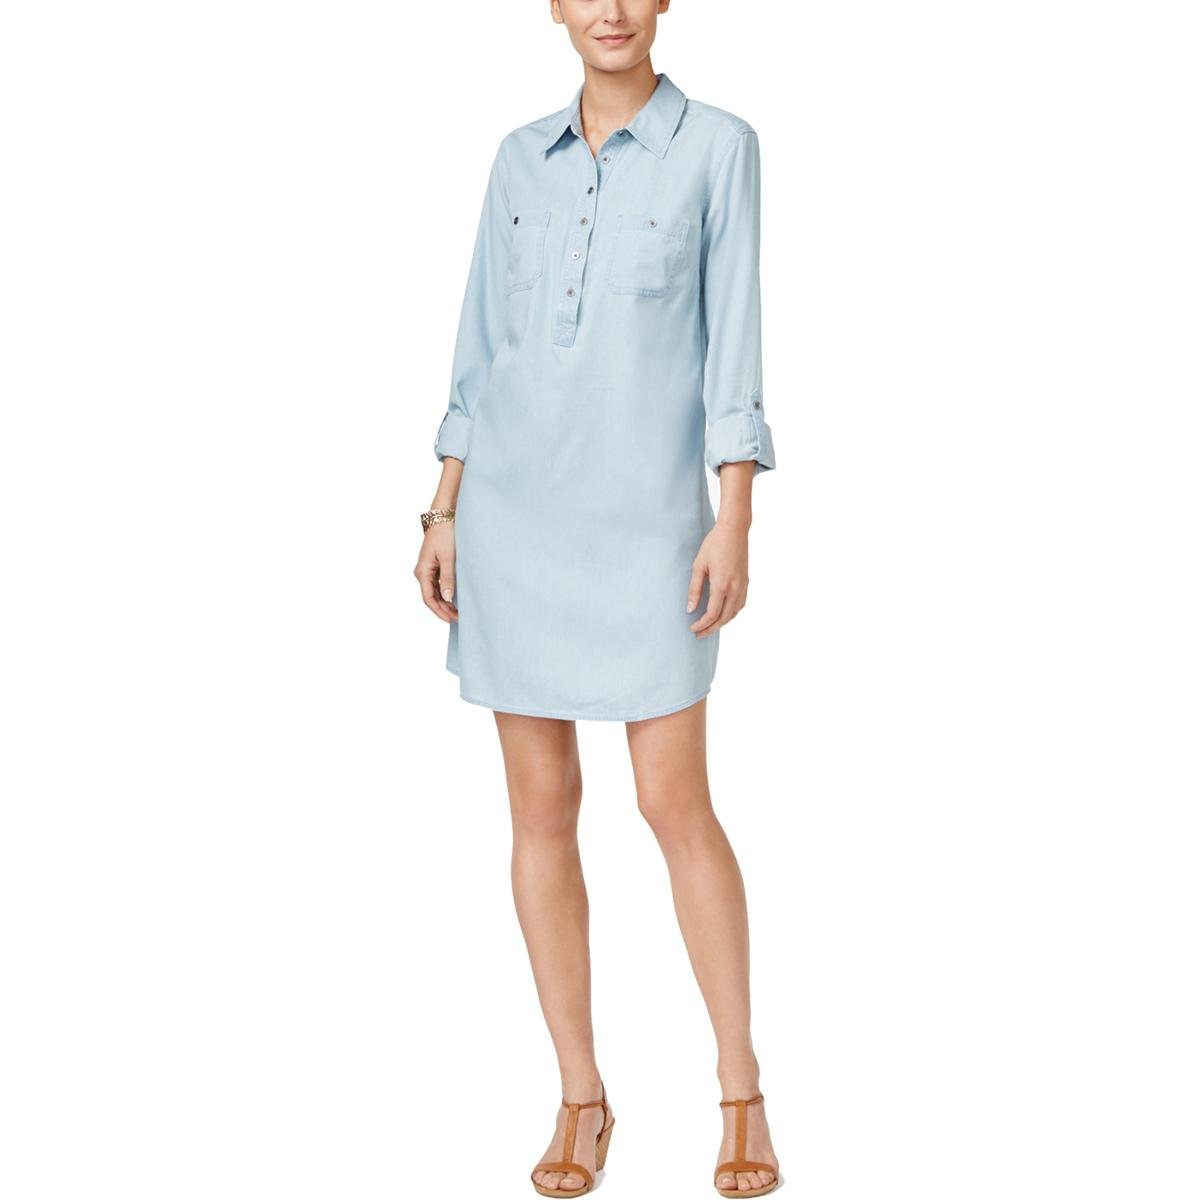 Style & Co. Womens Petites Chambray Adjustable Sleeves Shirtdress Blue PL